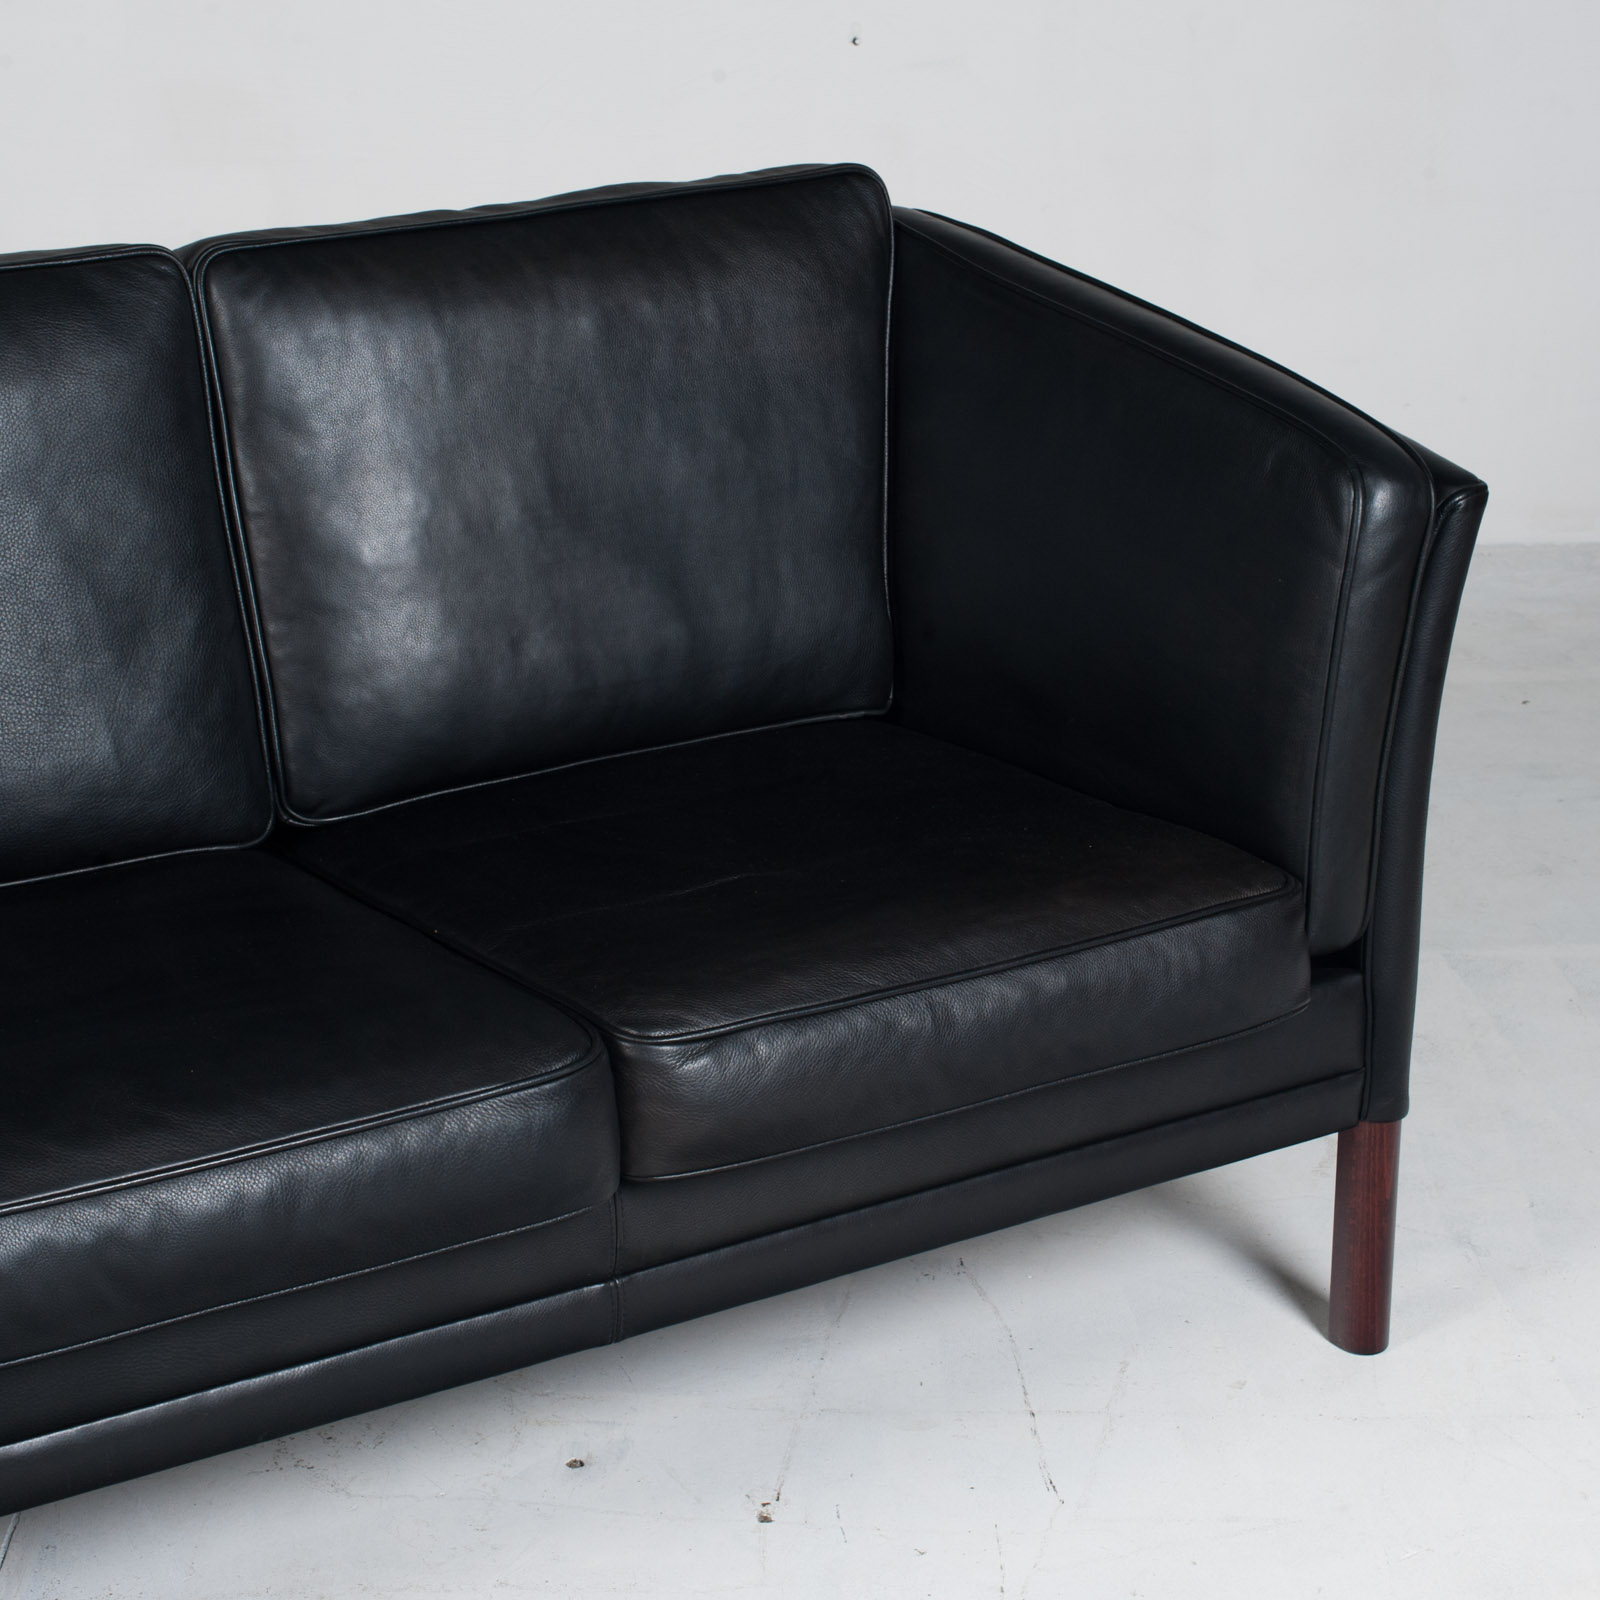 3 Seat Sofa In Black Aniline Leather 1960s Denmark 04